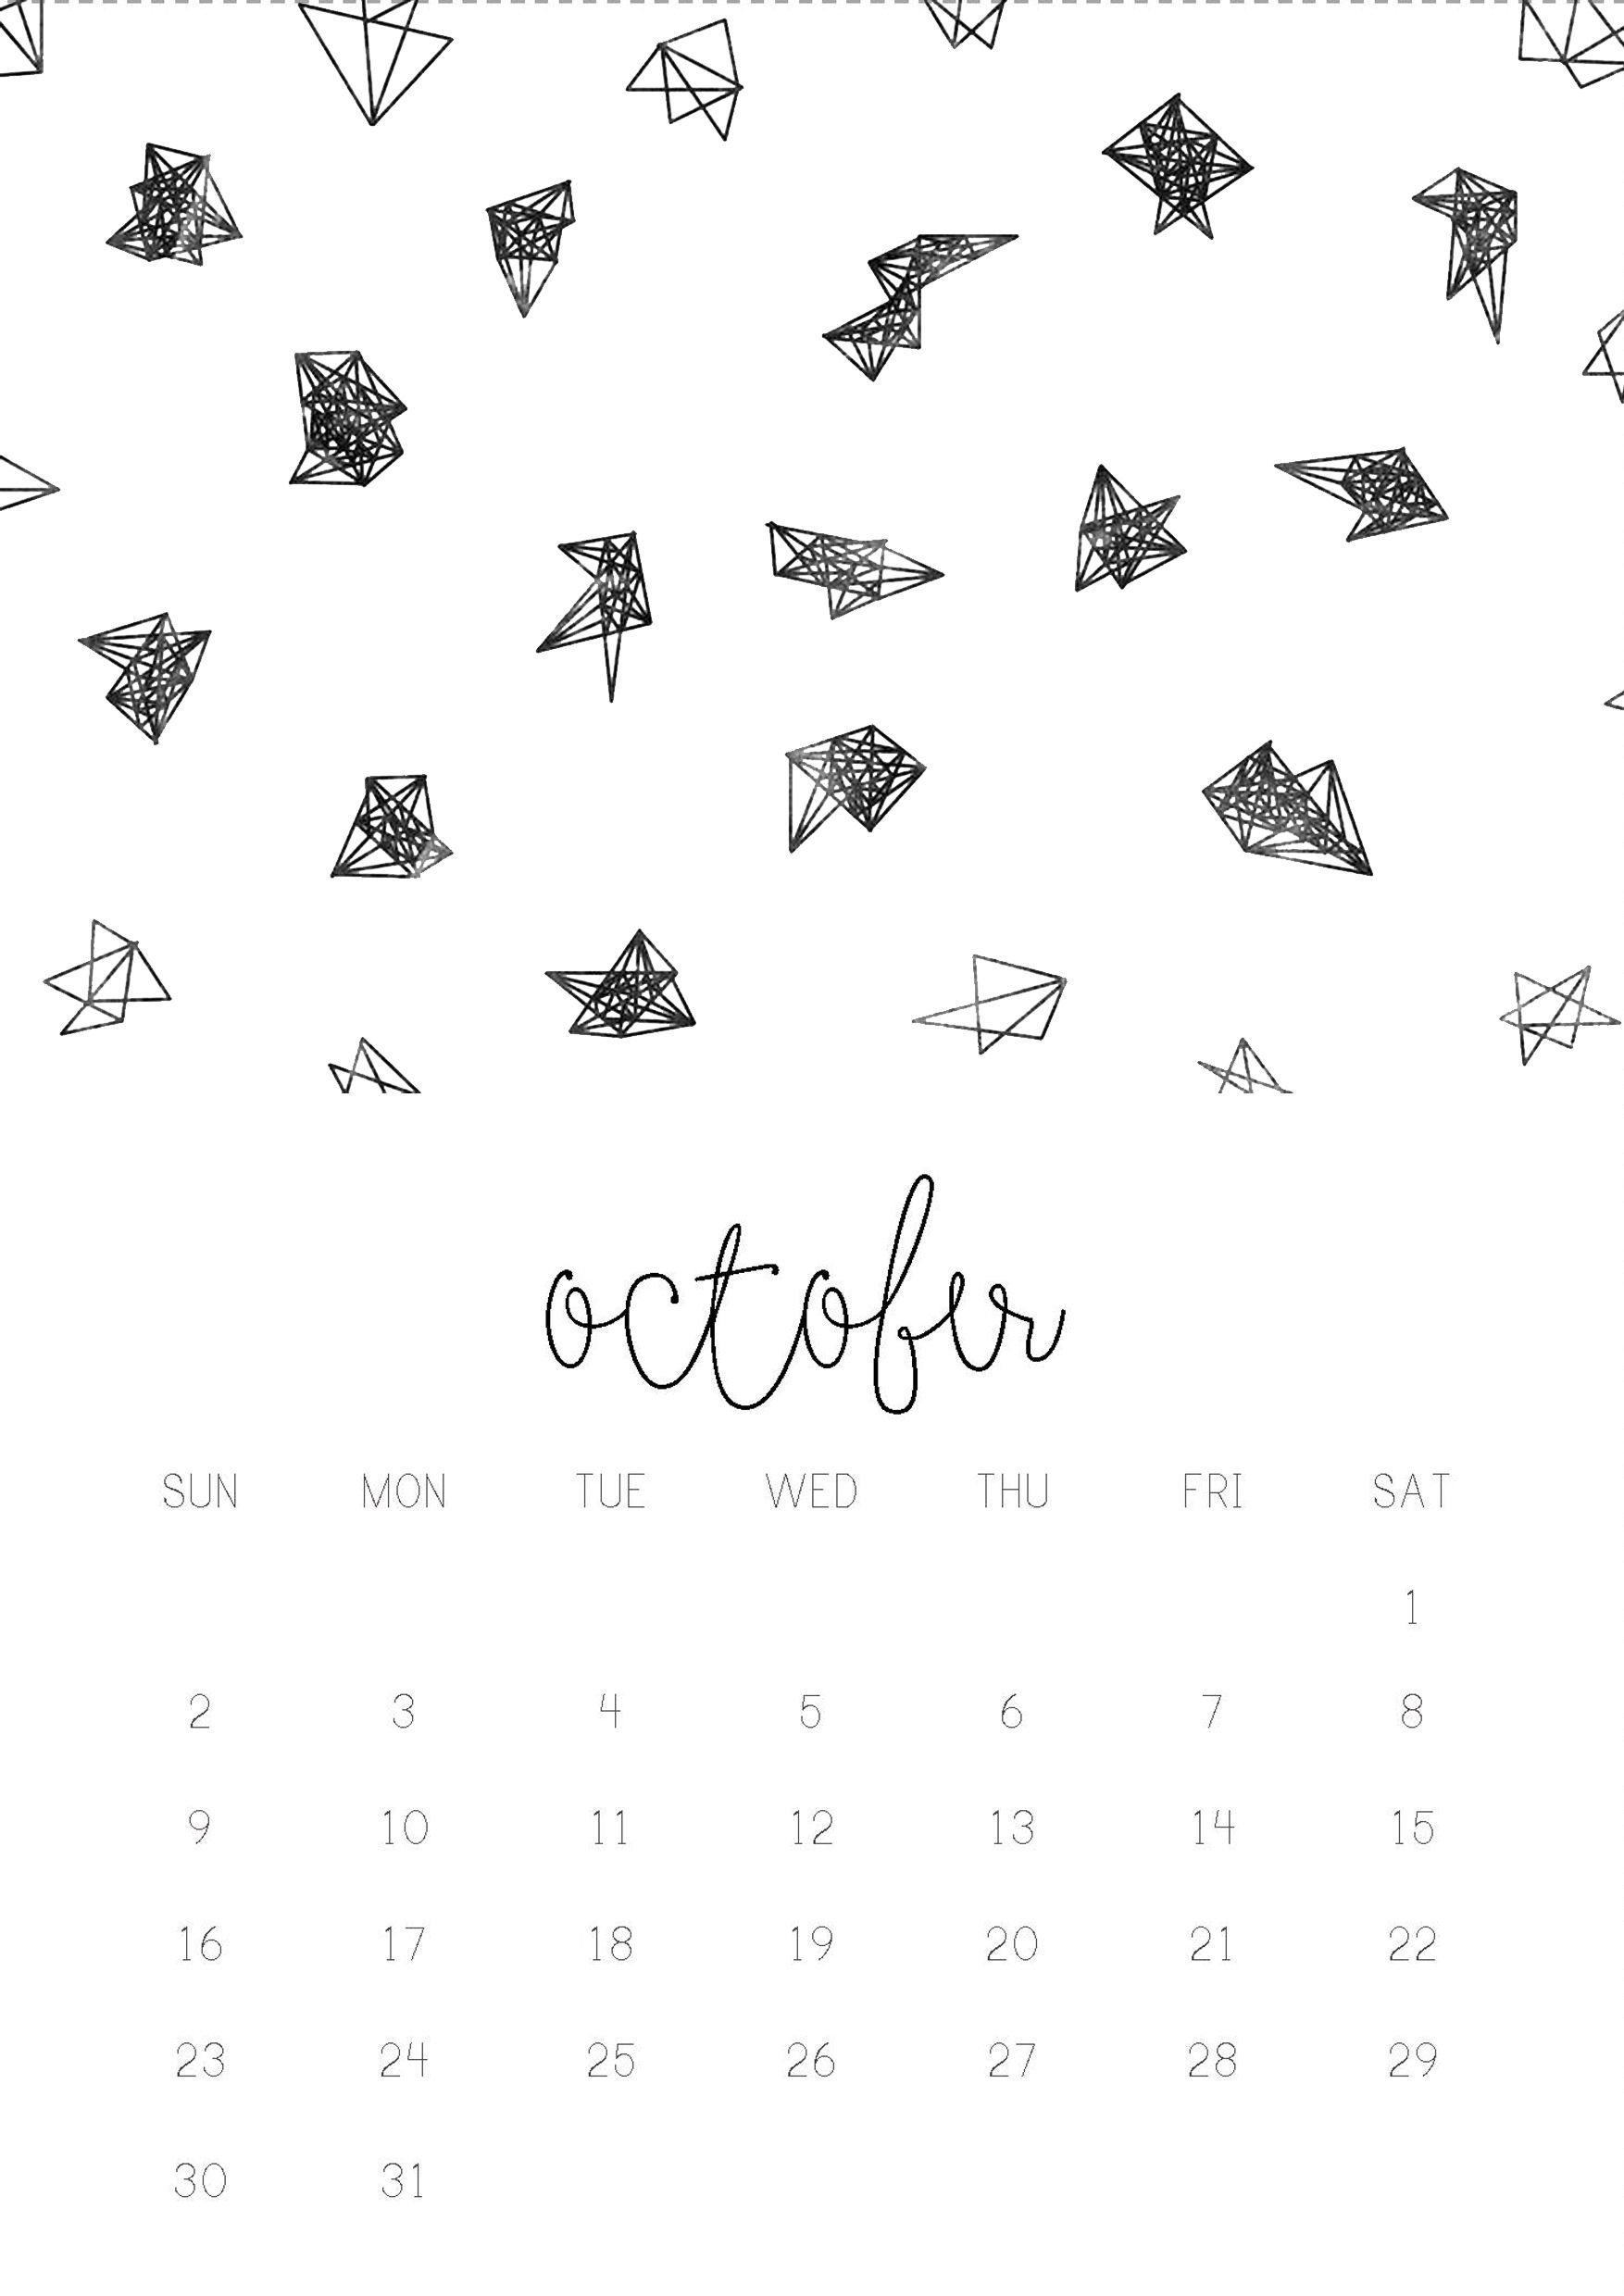 10/12 October monthly 2016 calendar printable, collage